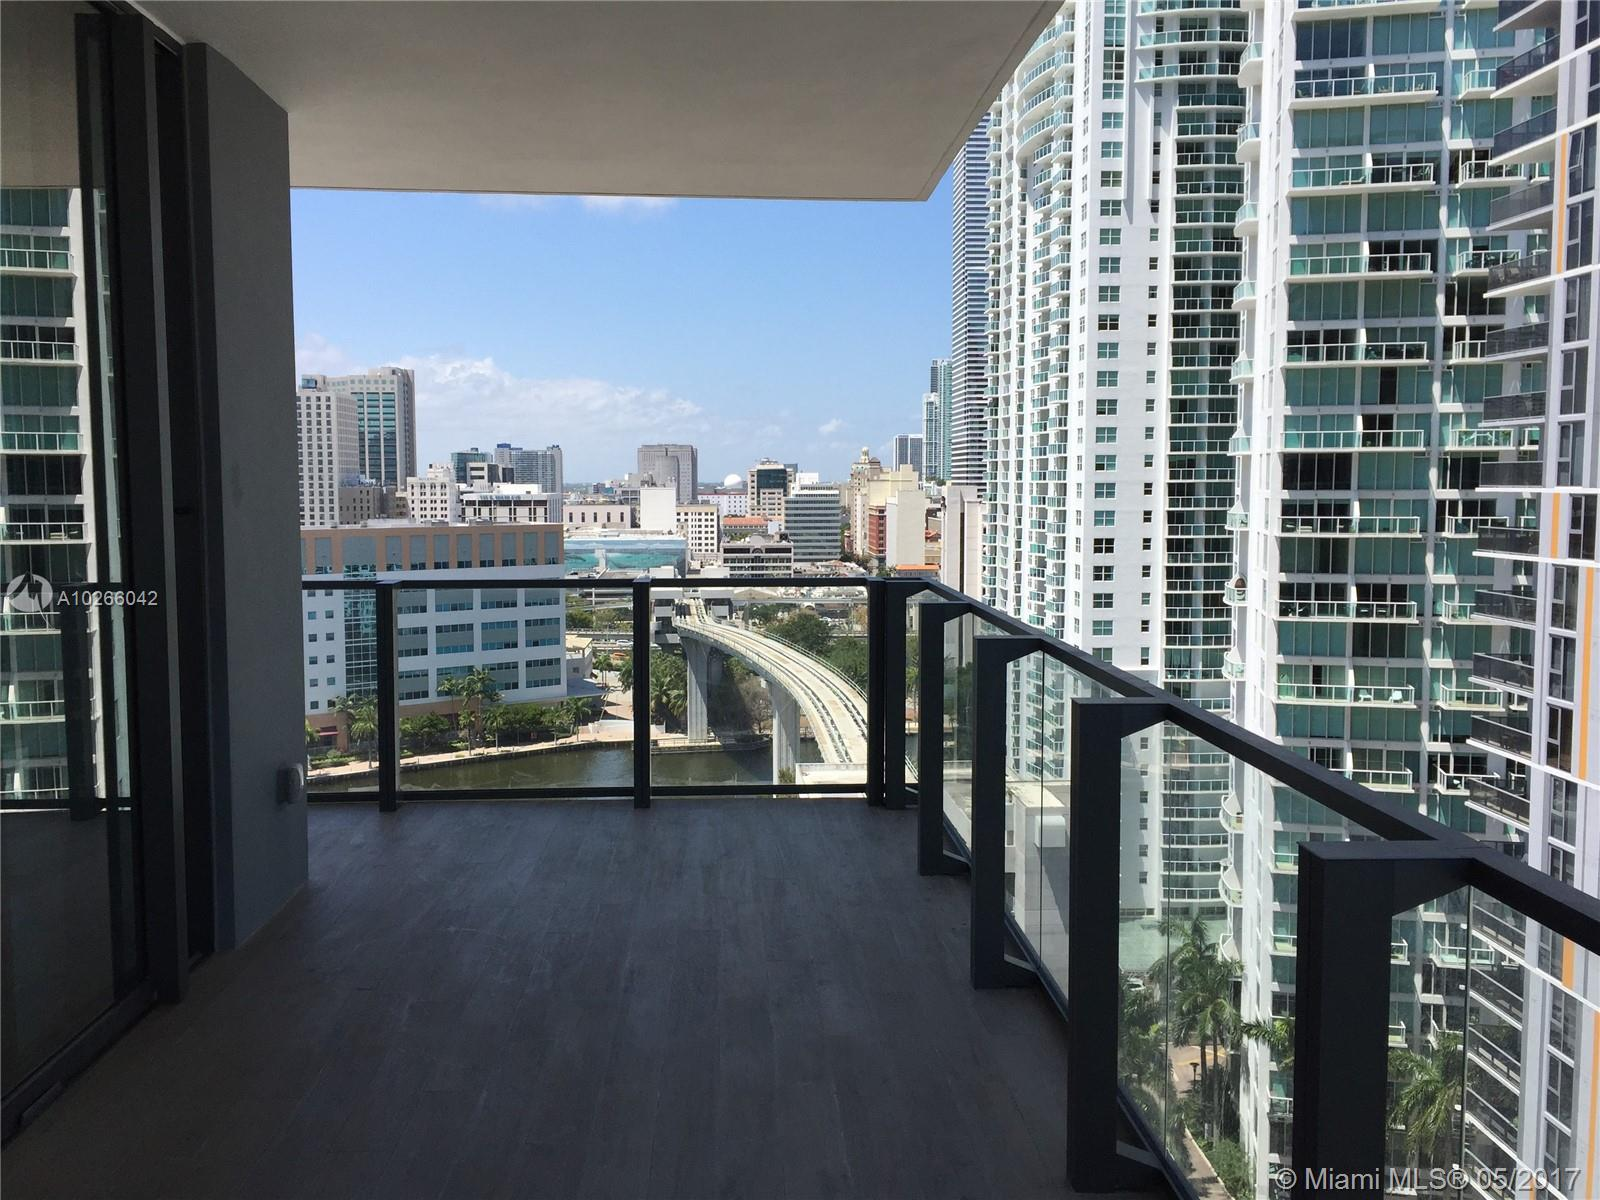 68 6th st-1111 miami--fl-33131-a10266042-Pic11